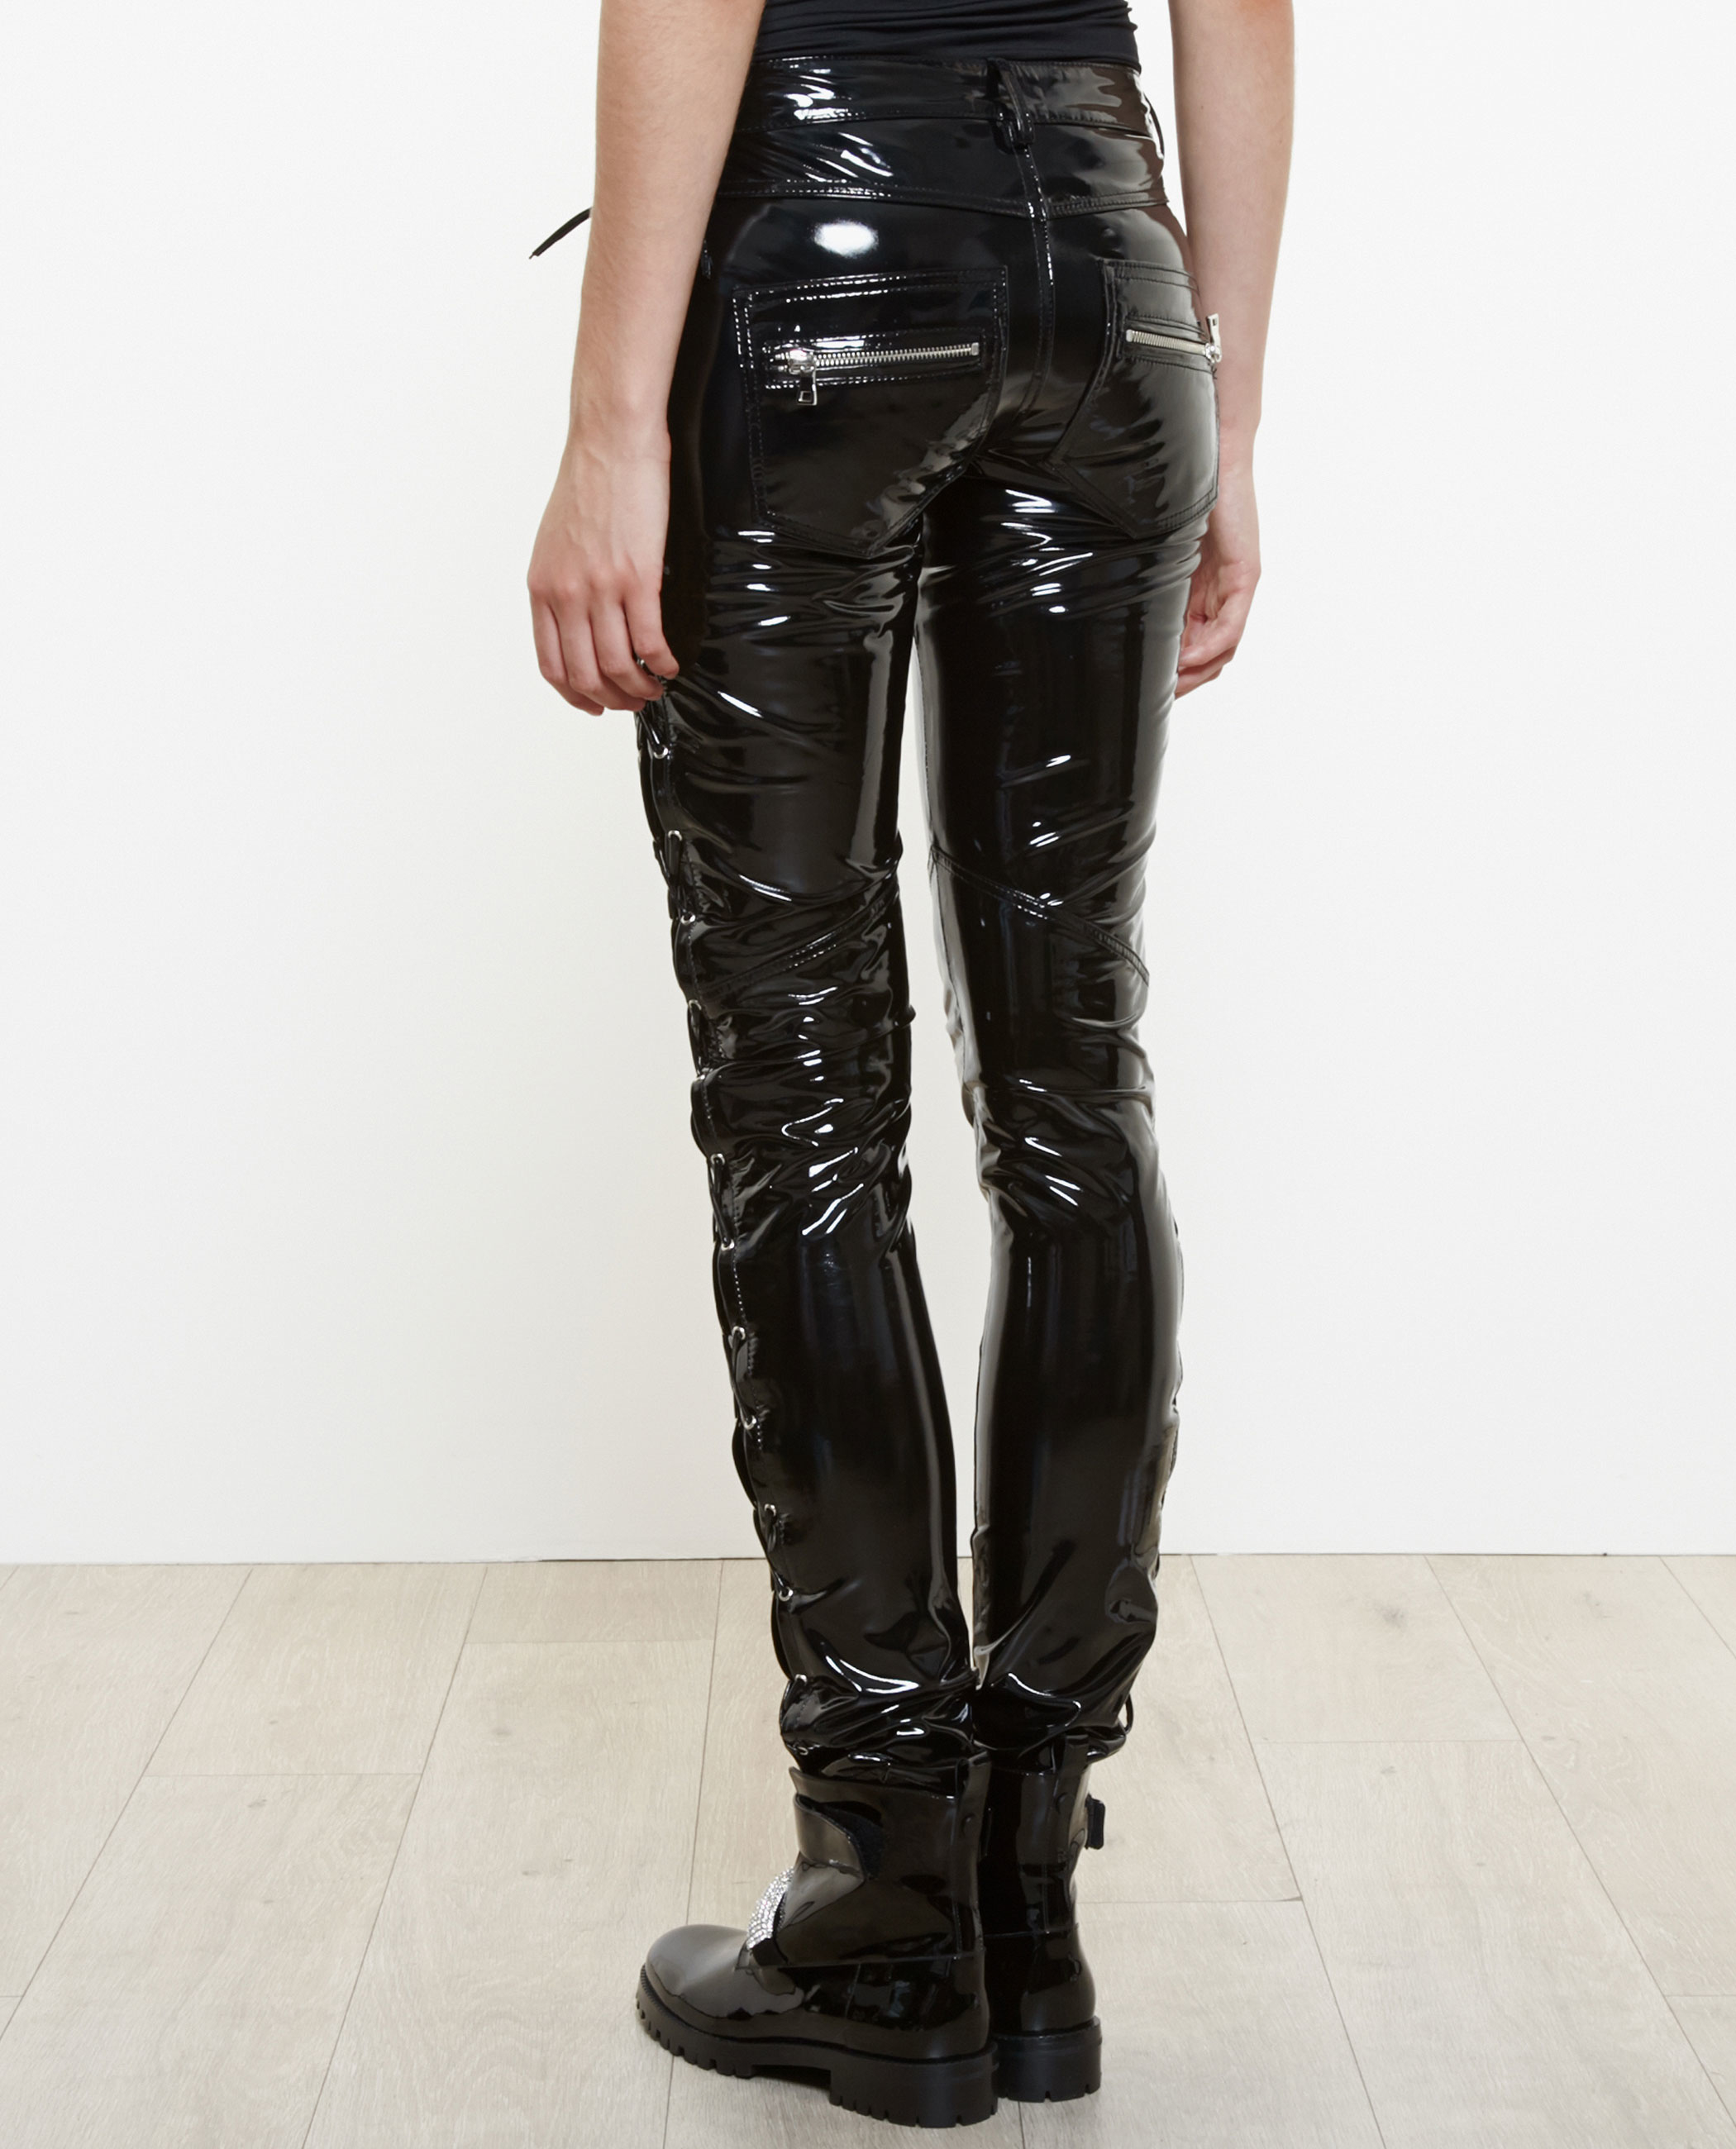 Pvc Vinyl Jeans Trousers Blog Fashion Autumn Winter